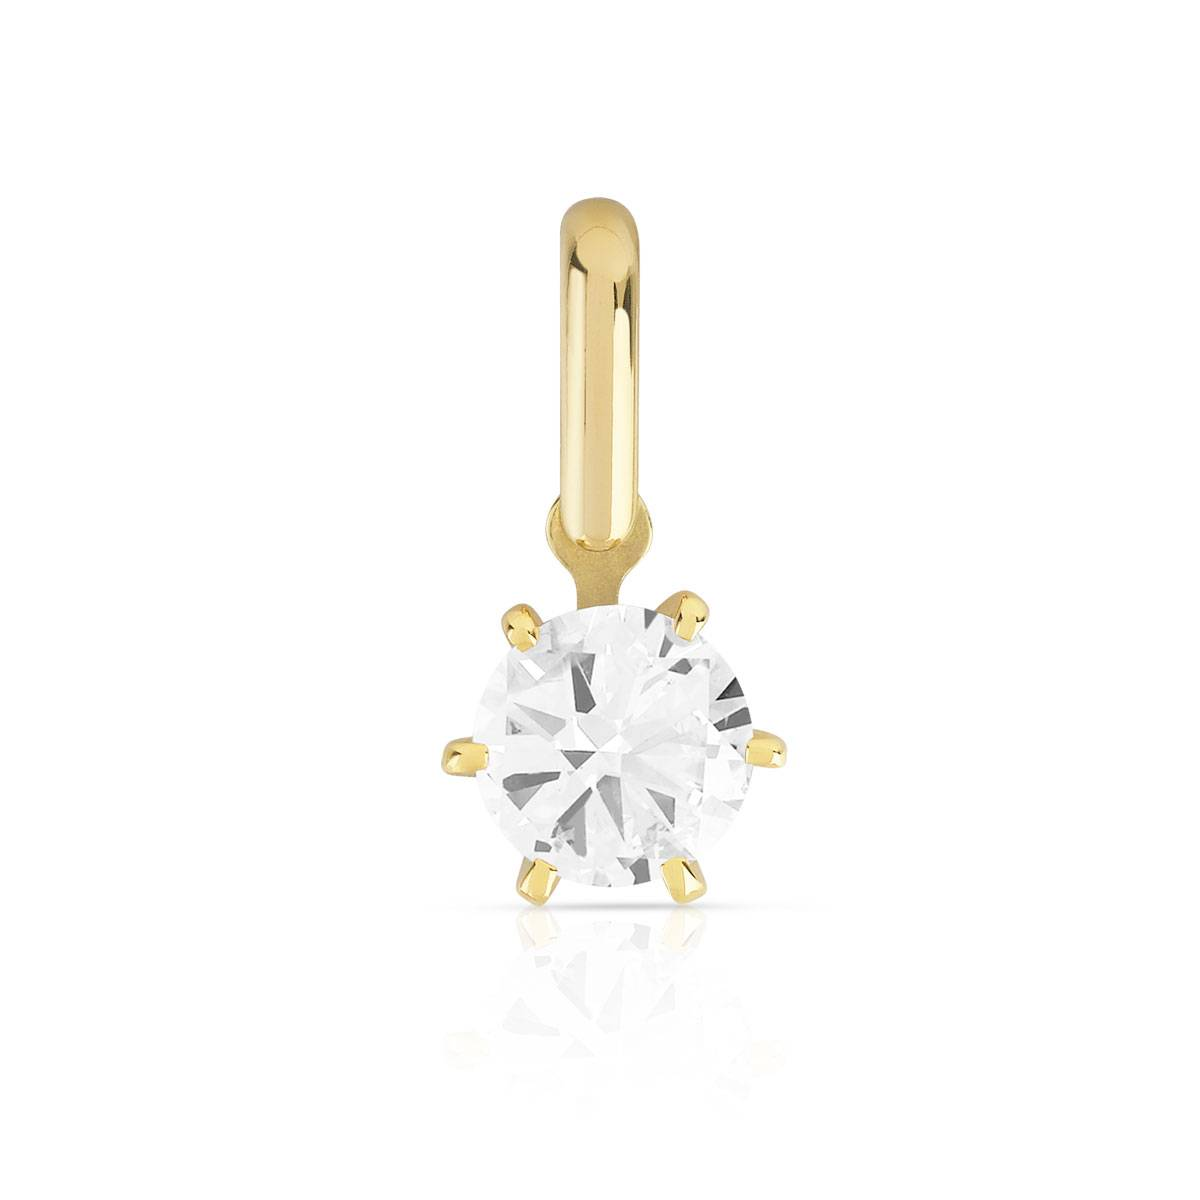 MATY Pendentif or 750 diamant synthétique 0.40 carat- MATY